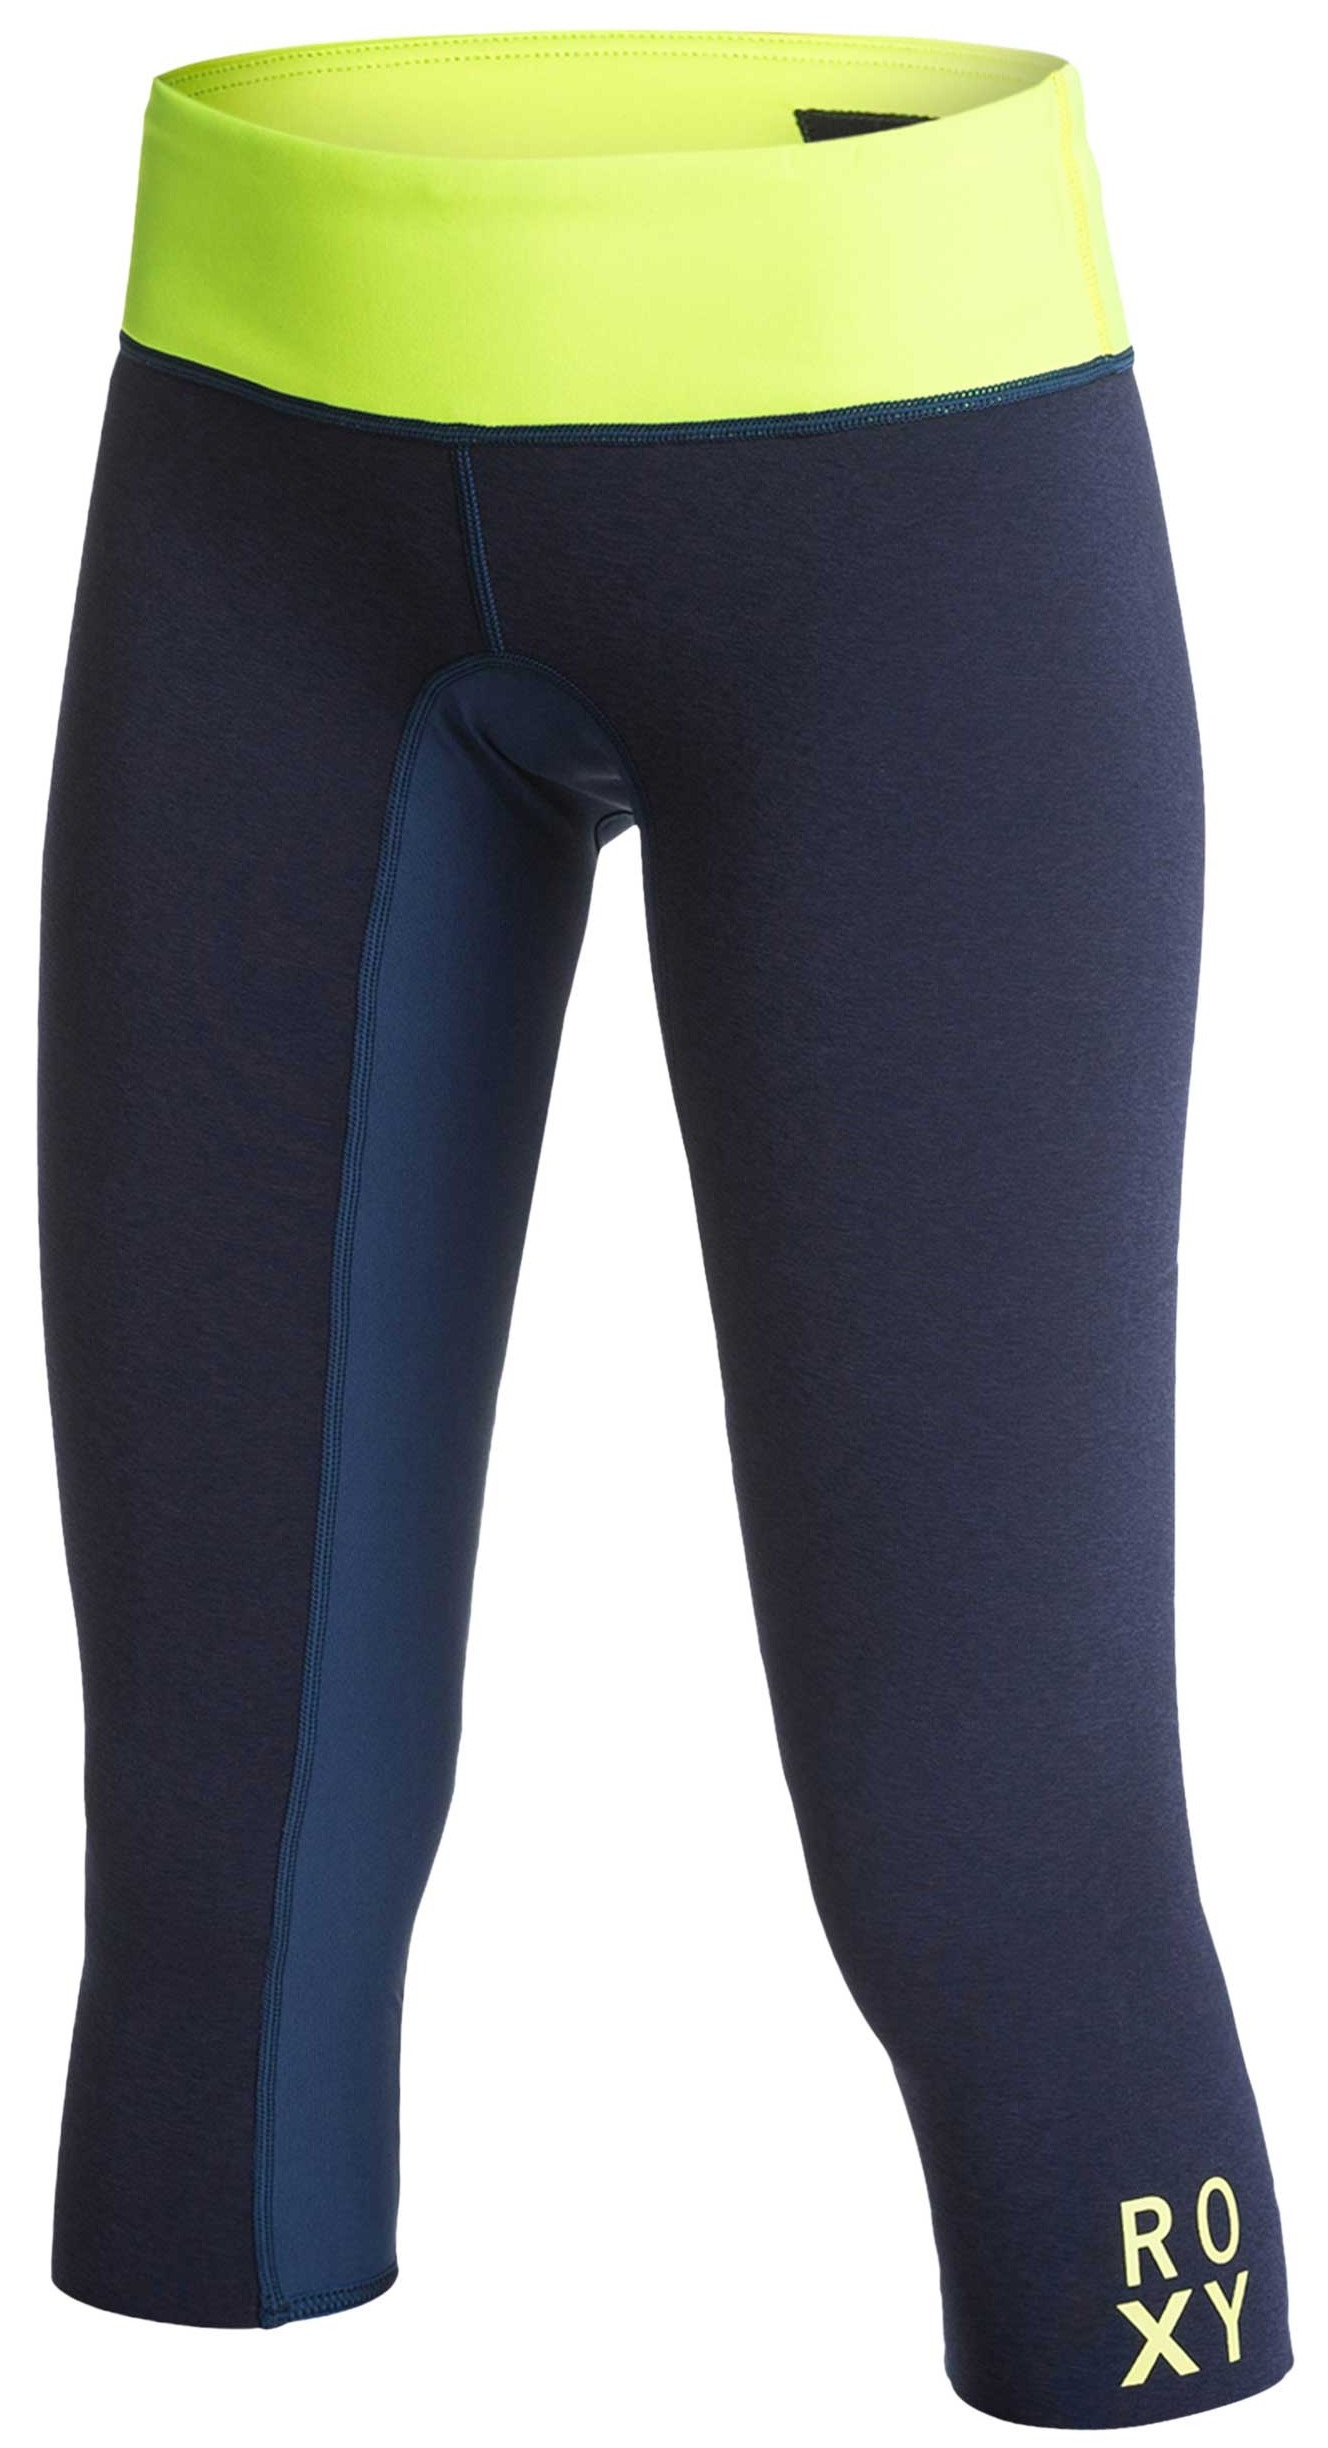 Roxy XY 1mm Inside Break Neo Capri Women's Pant Neoprene